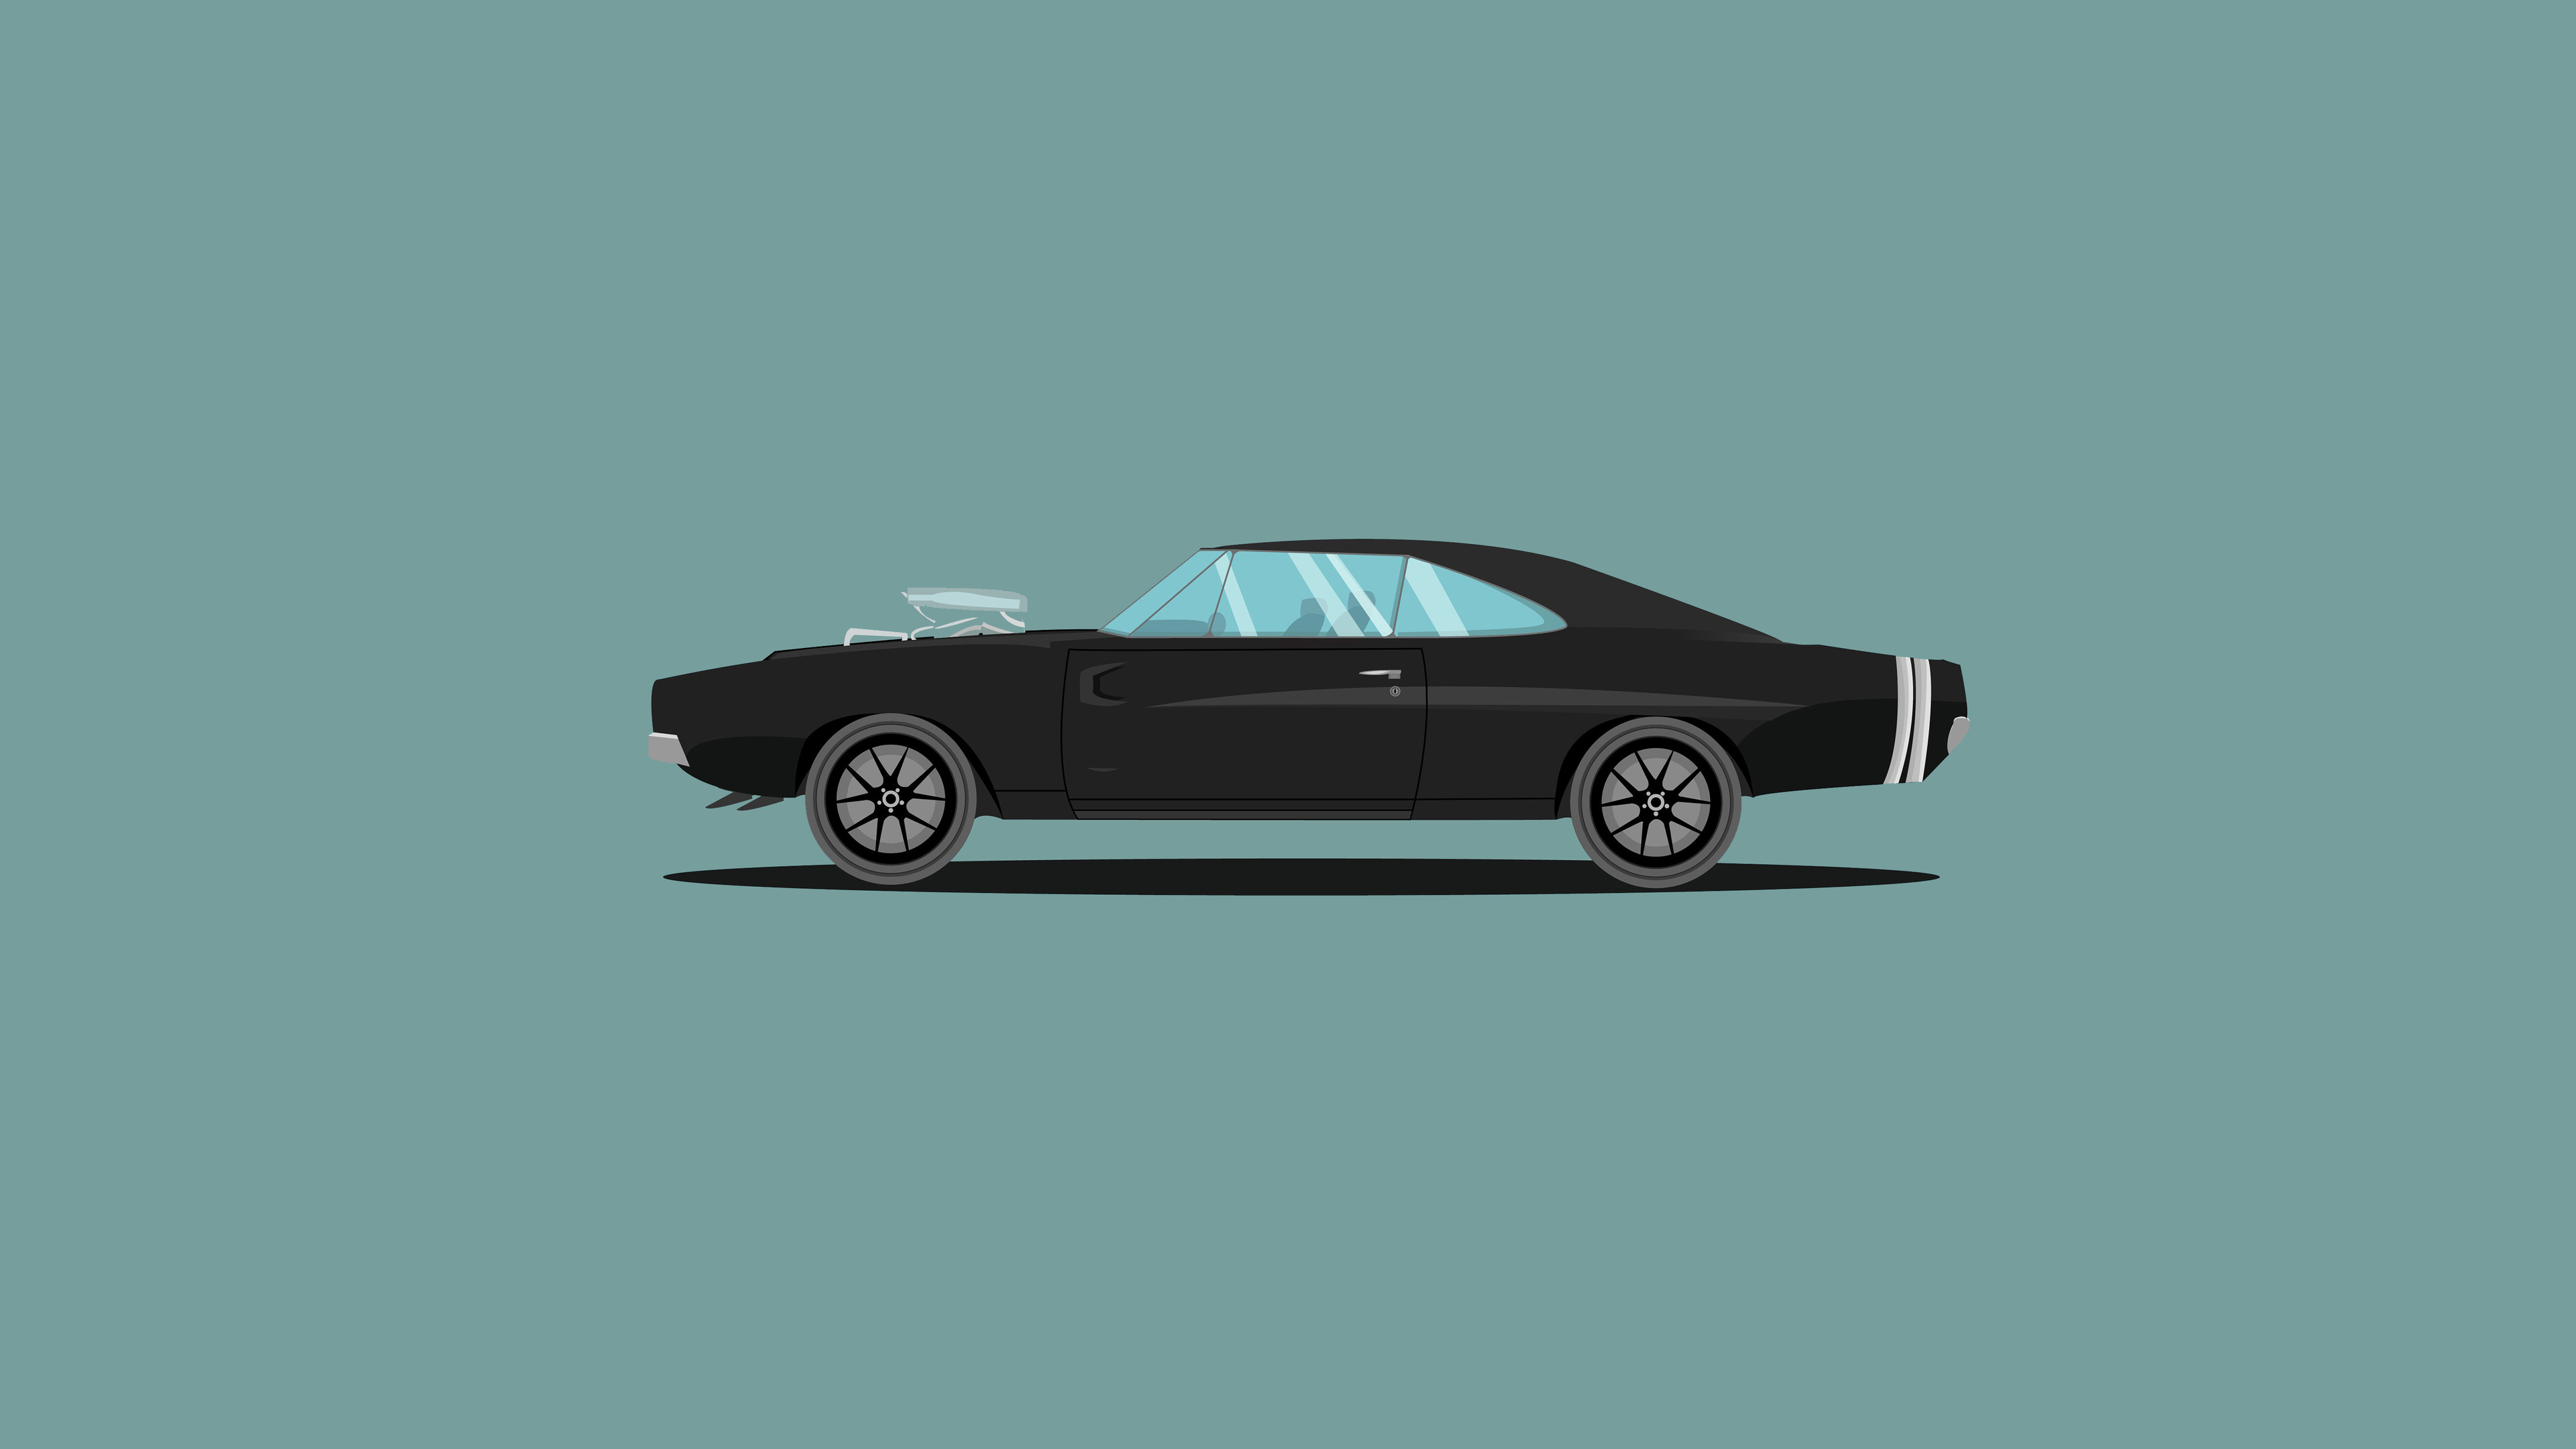 1970 dodge charger fast and furious edition illustration 1540755429 - 1970 Dodge Charger Fast And Furious Edition Illustration - hd-wallpapers, dodge charger wallpapers, cars wallpapers, artwork wallpapers, 5k wallpapers, 4k-wallpapers